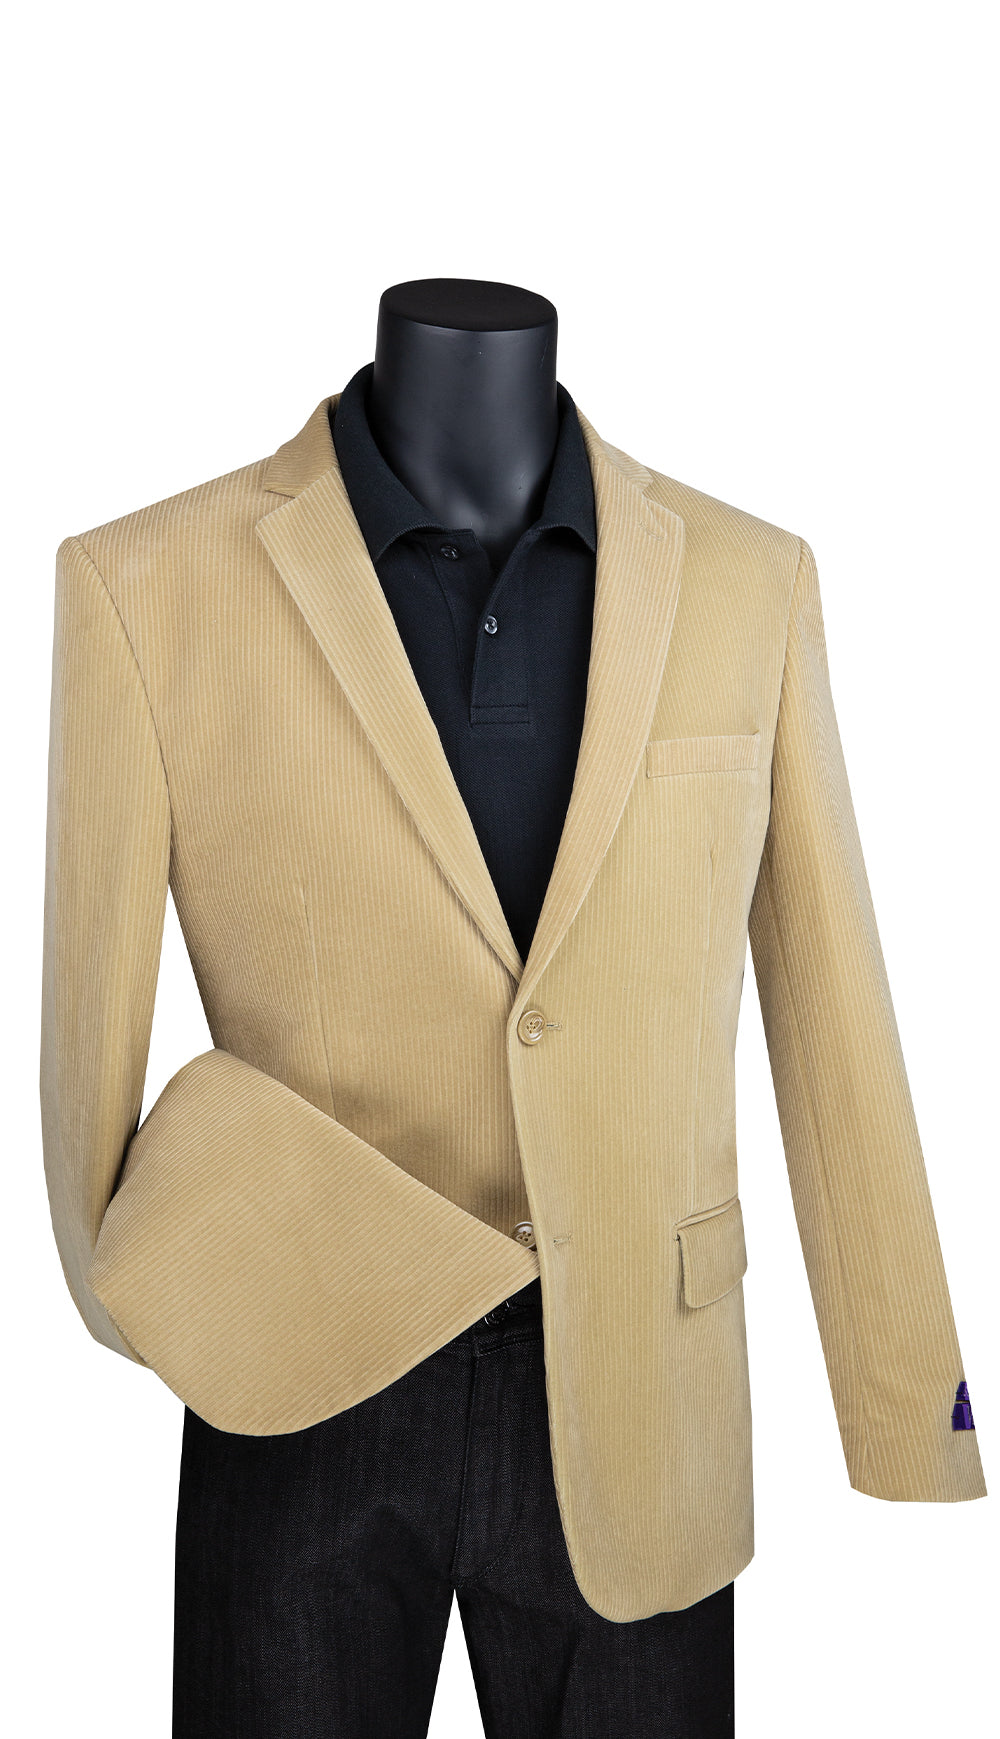 Vinci Sport Coat BCORD-1-Khaki - Church Suits For Less